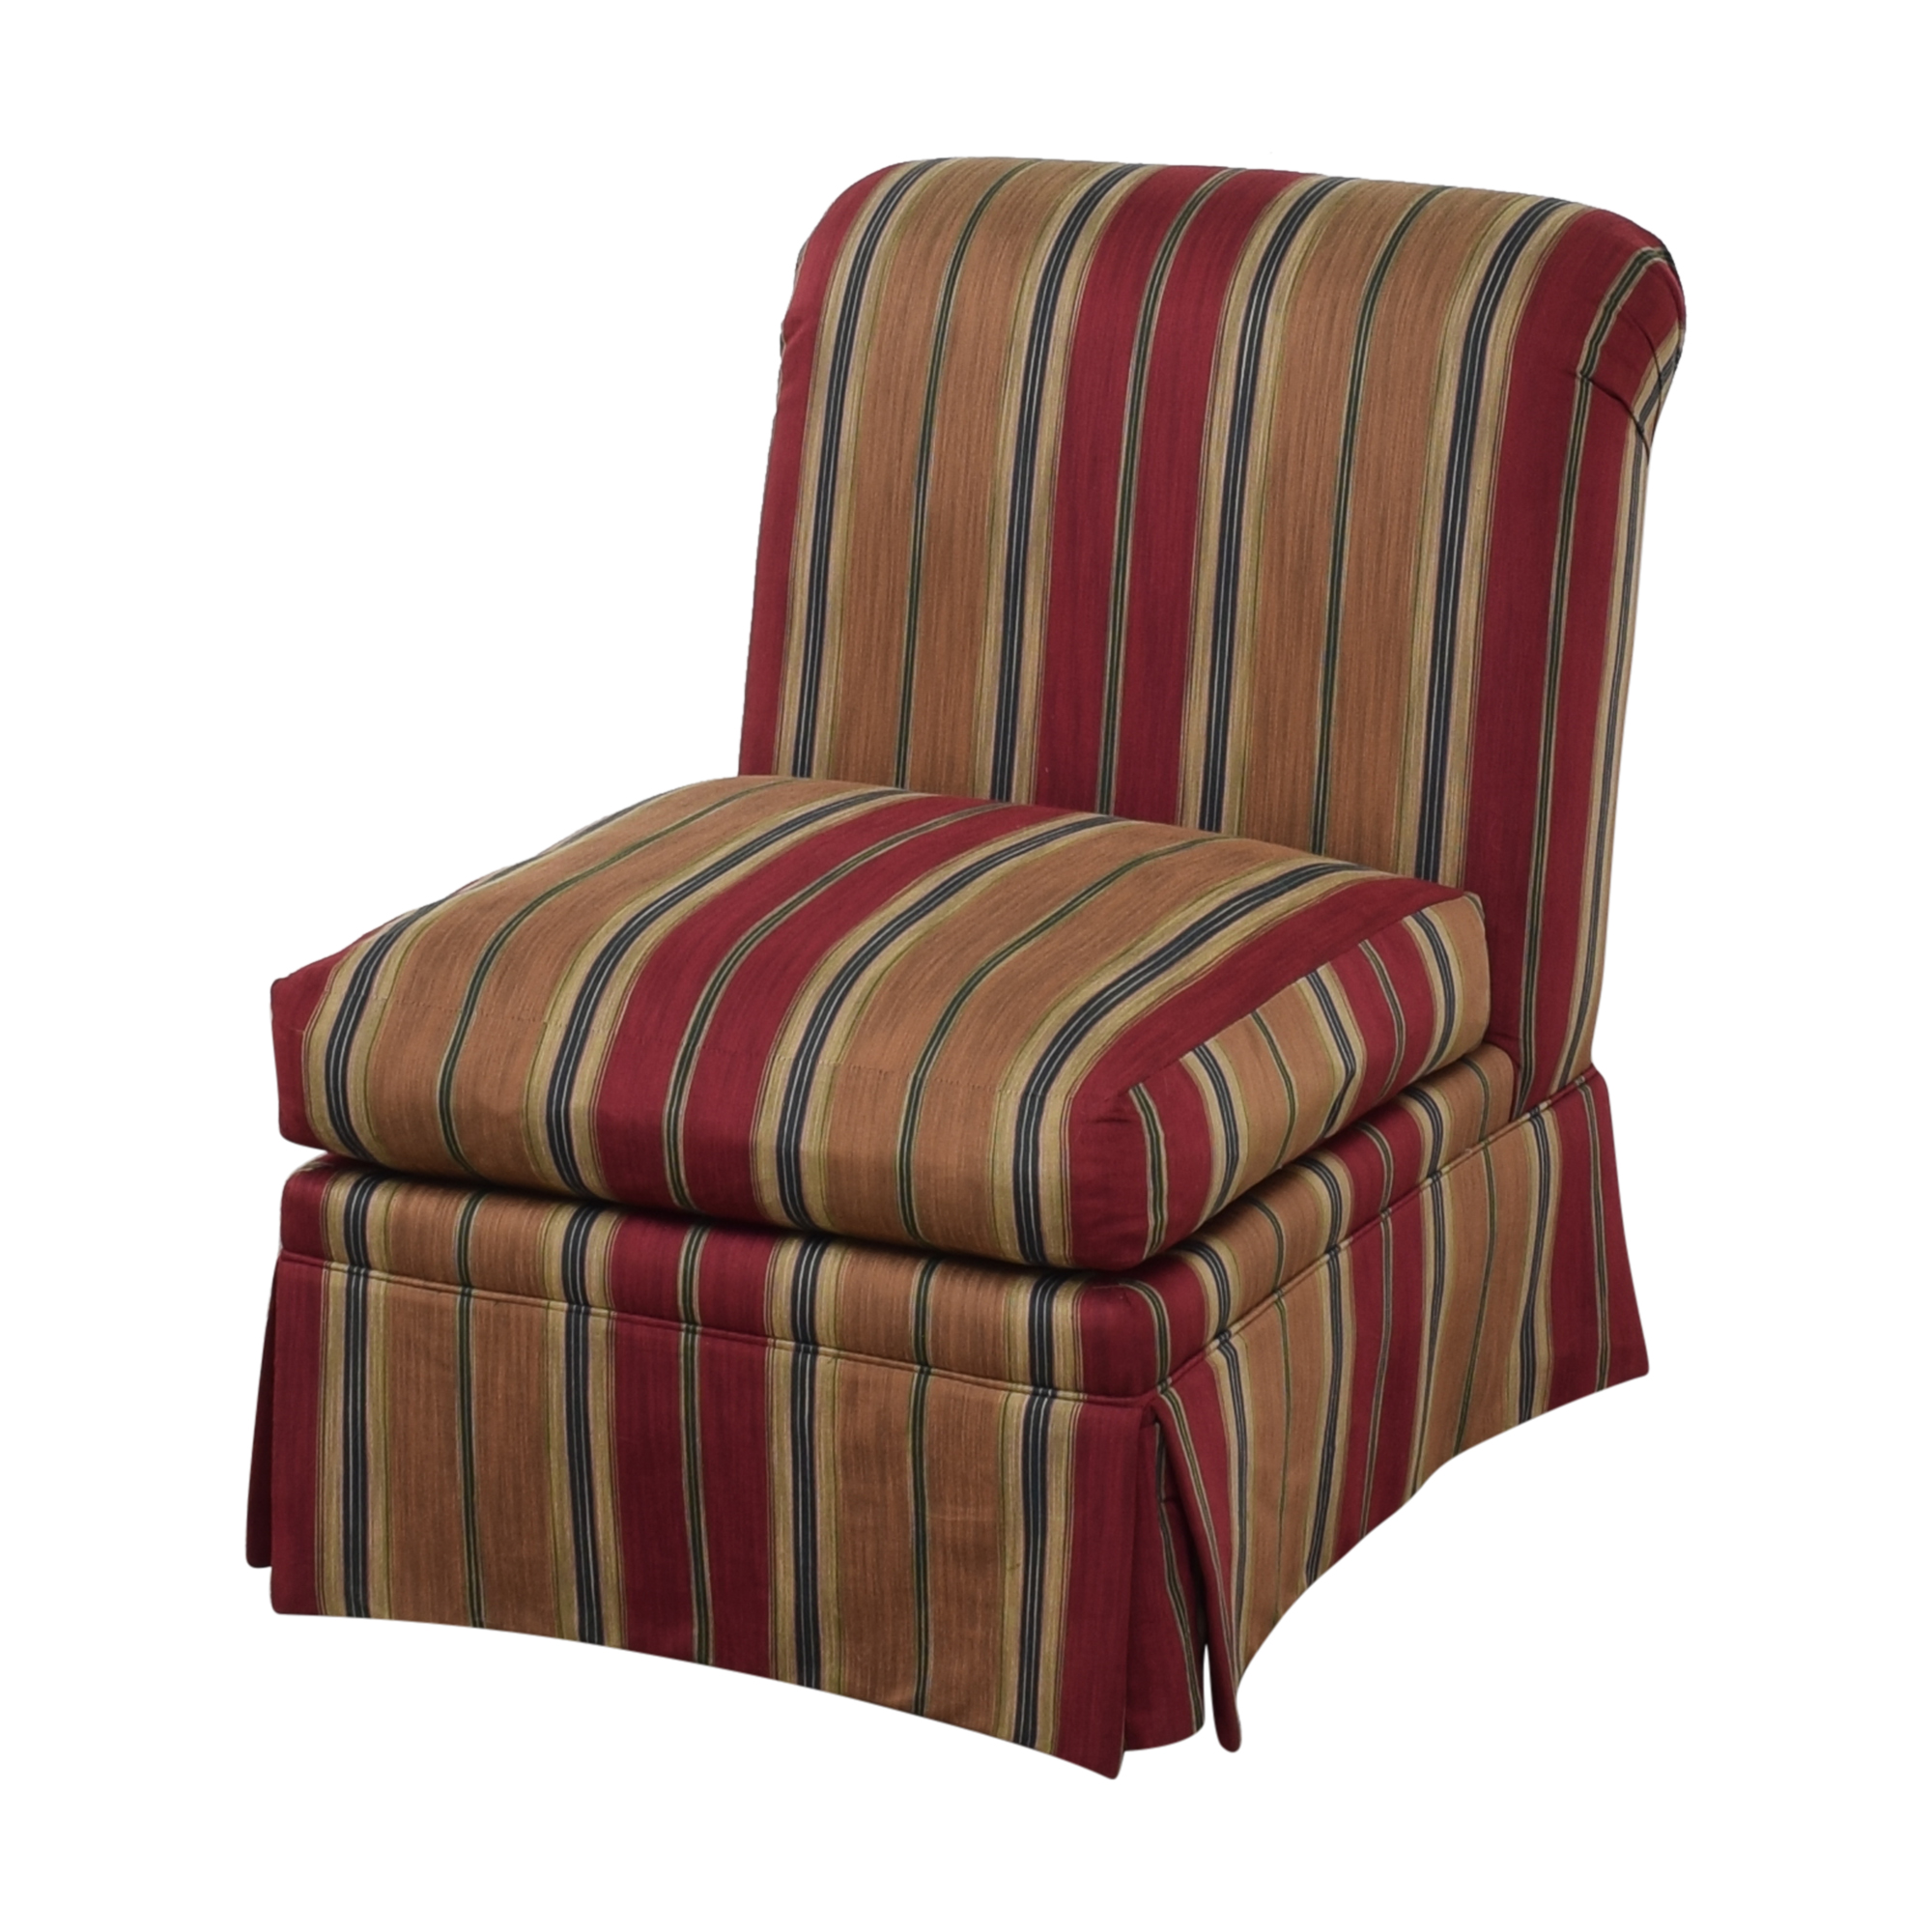 J. Royale Furniture Upholstered Armless Chair / Dining Chairs